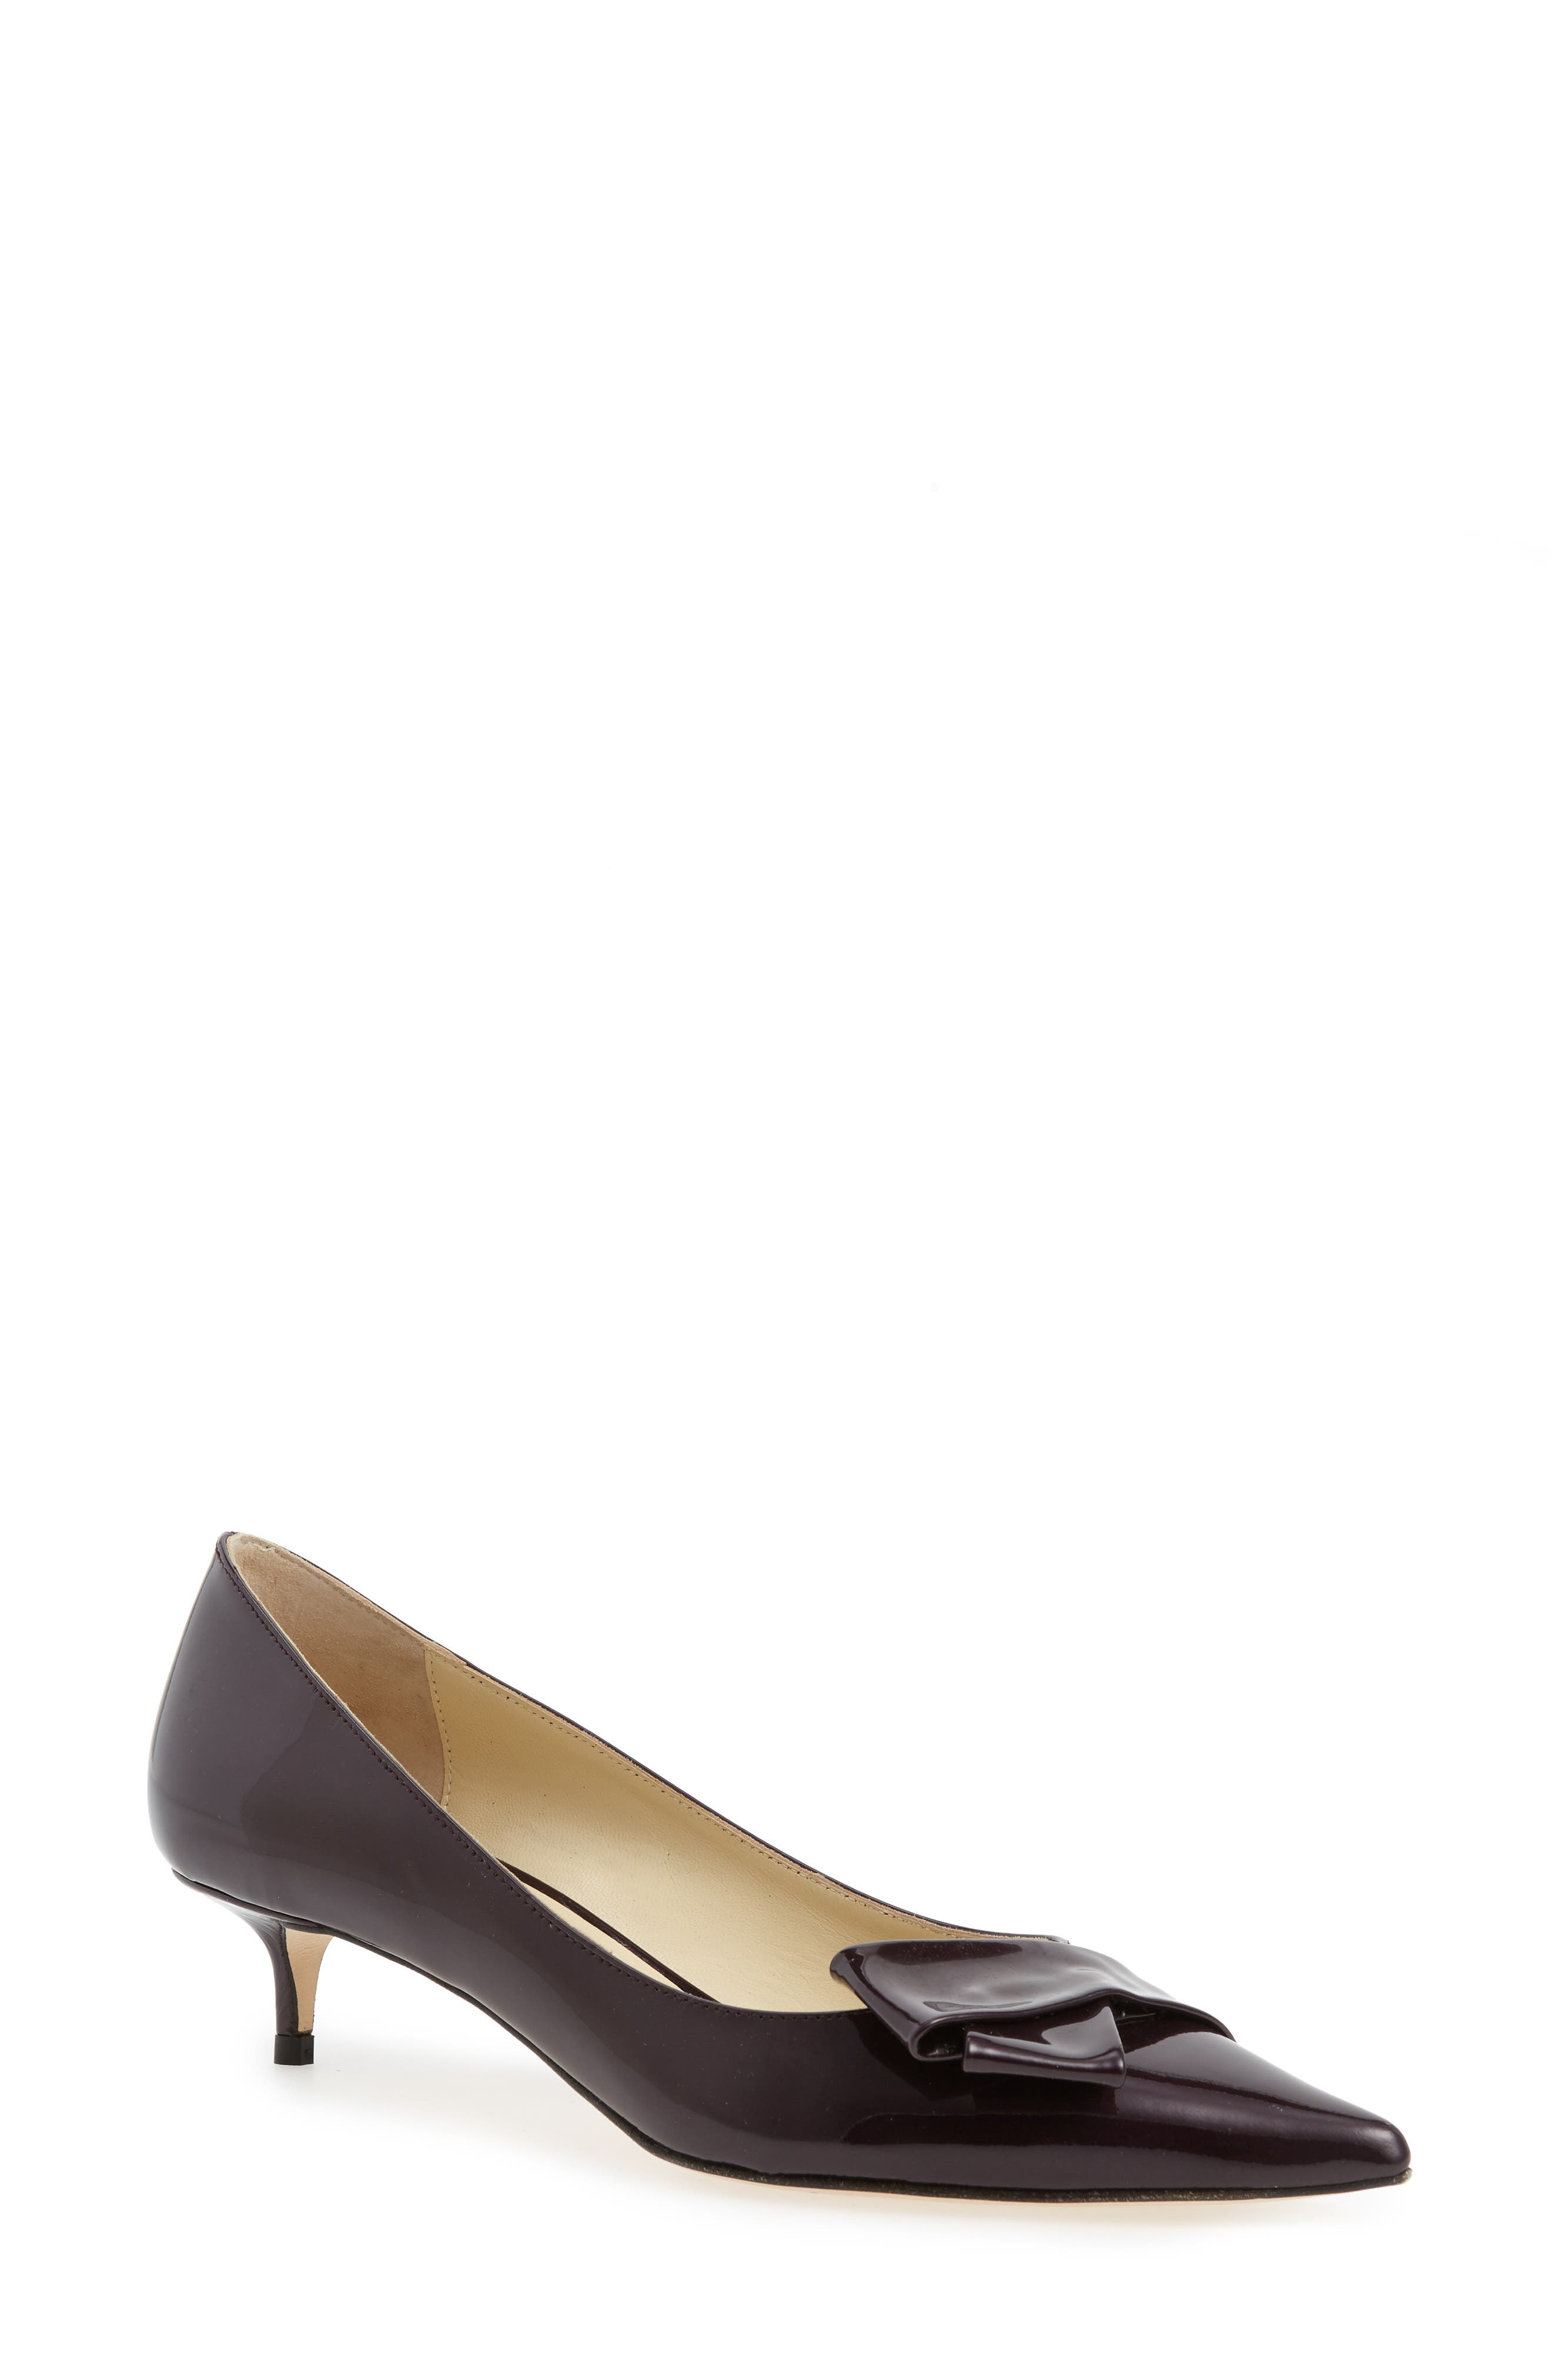 Butter Bliss Pointy Toe Pump,                             Main thumbnail 3, color,